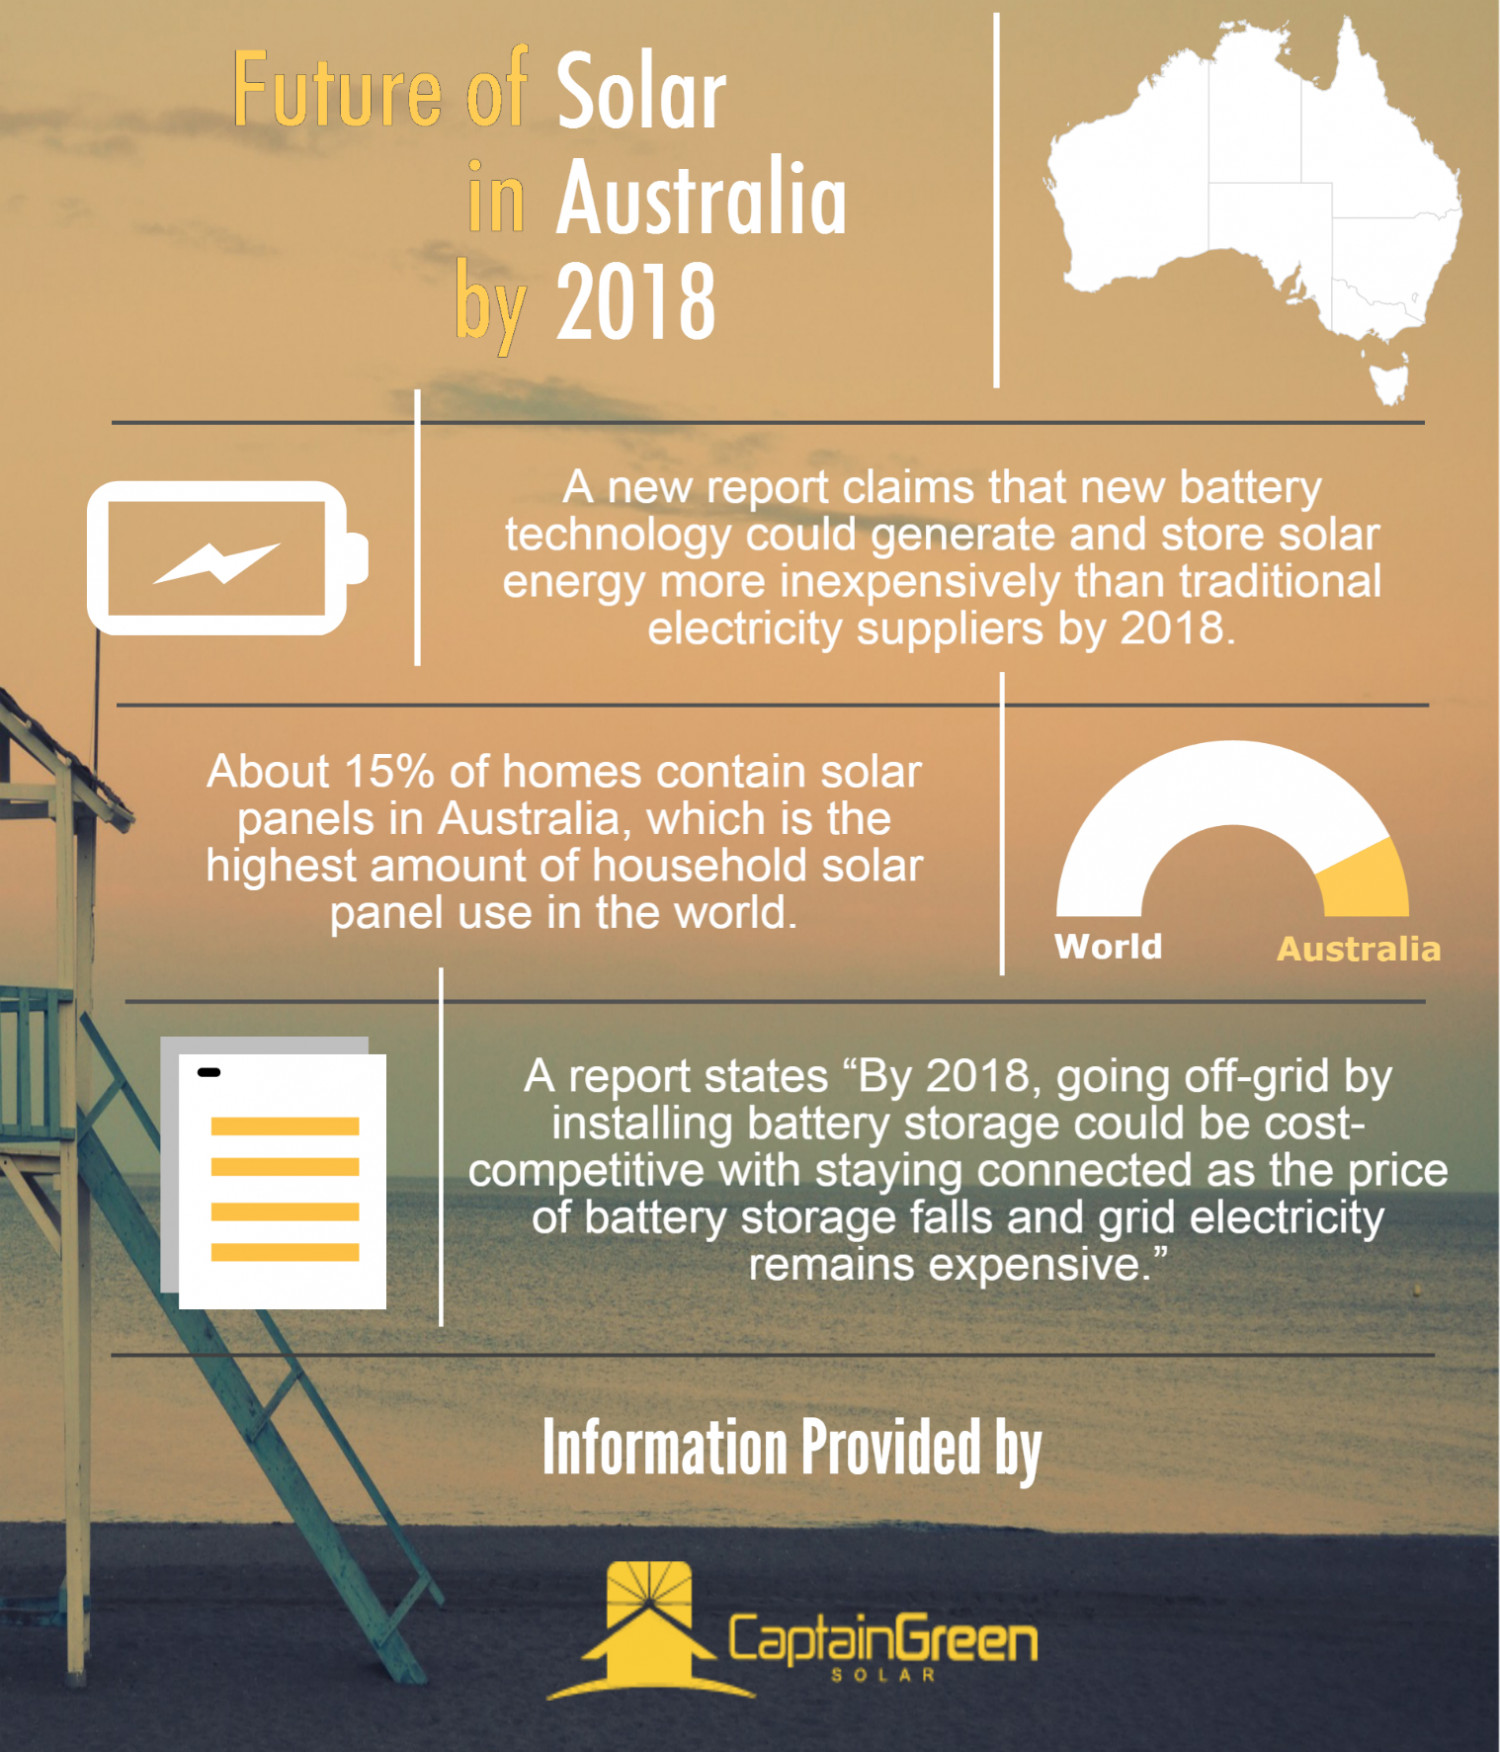 Future of Solar in Australia by 2018 Infographic